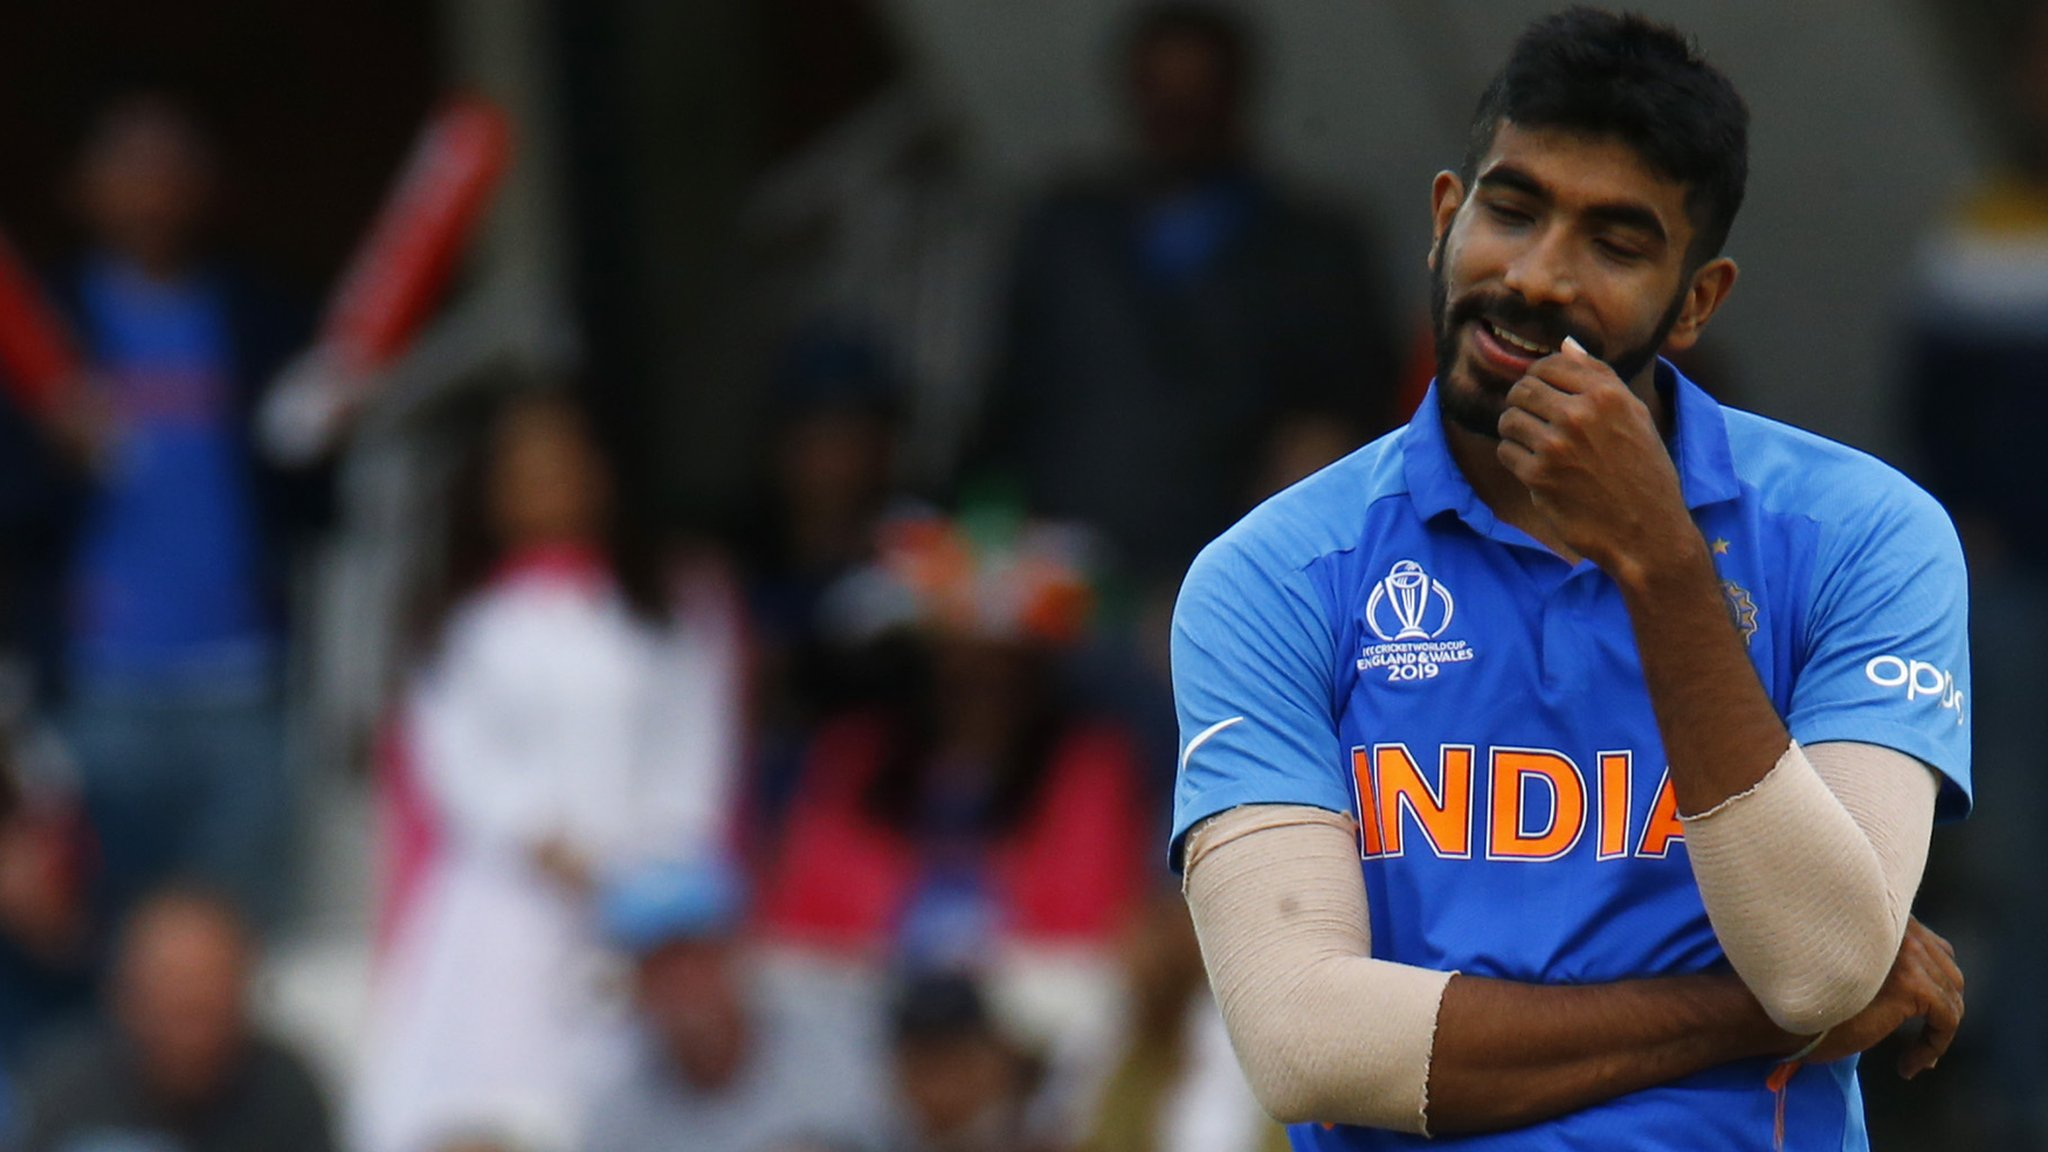 Cricket World Cup: India's Jasprit Bumrah says England the 'most difficult place' for bowlers